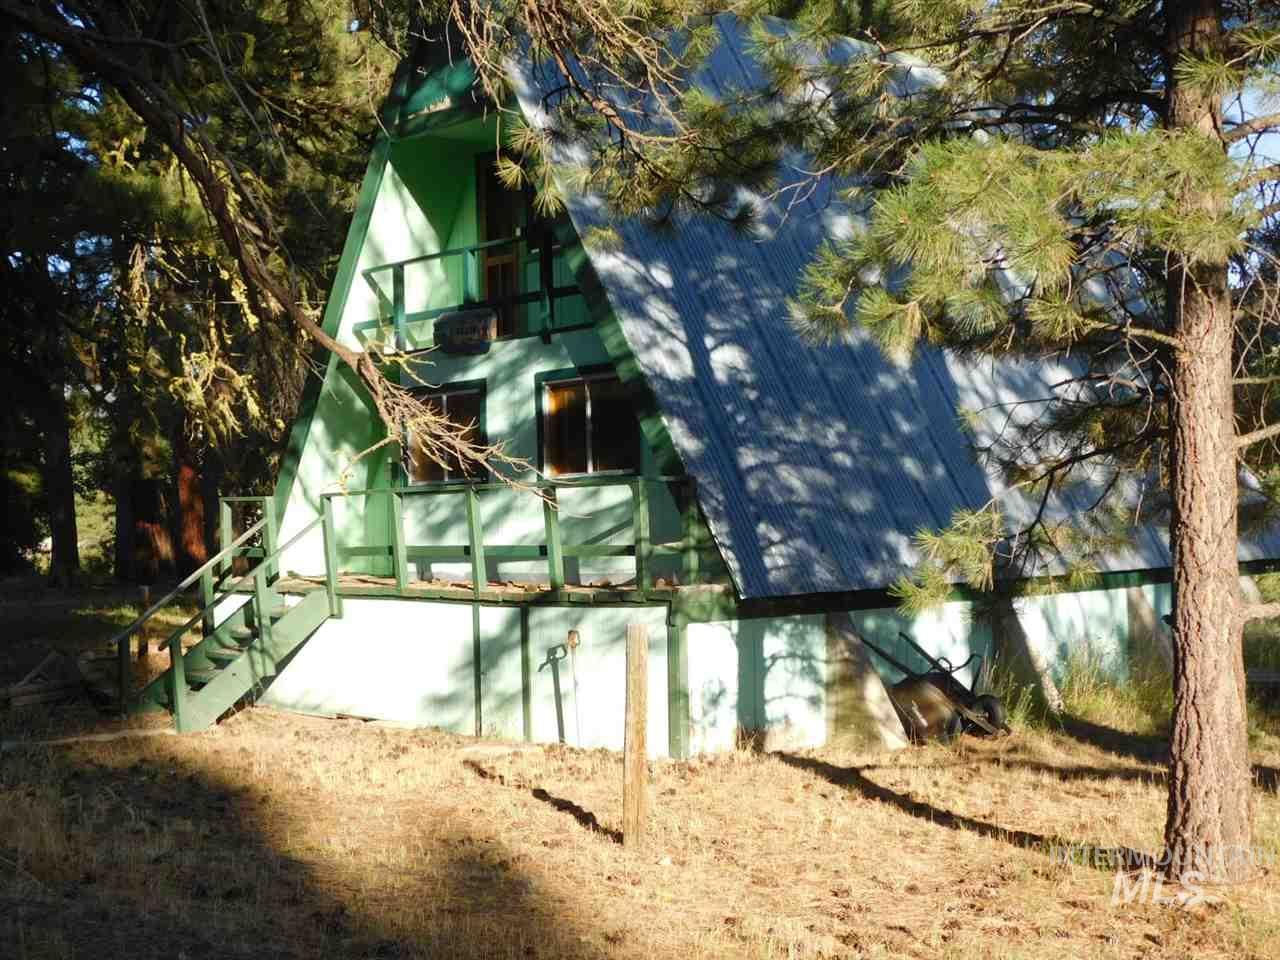 4332 N Pine Featherville Rd, Featherville, ID 83647